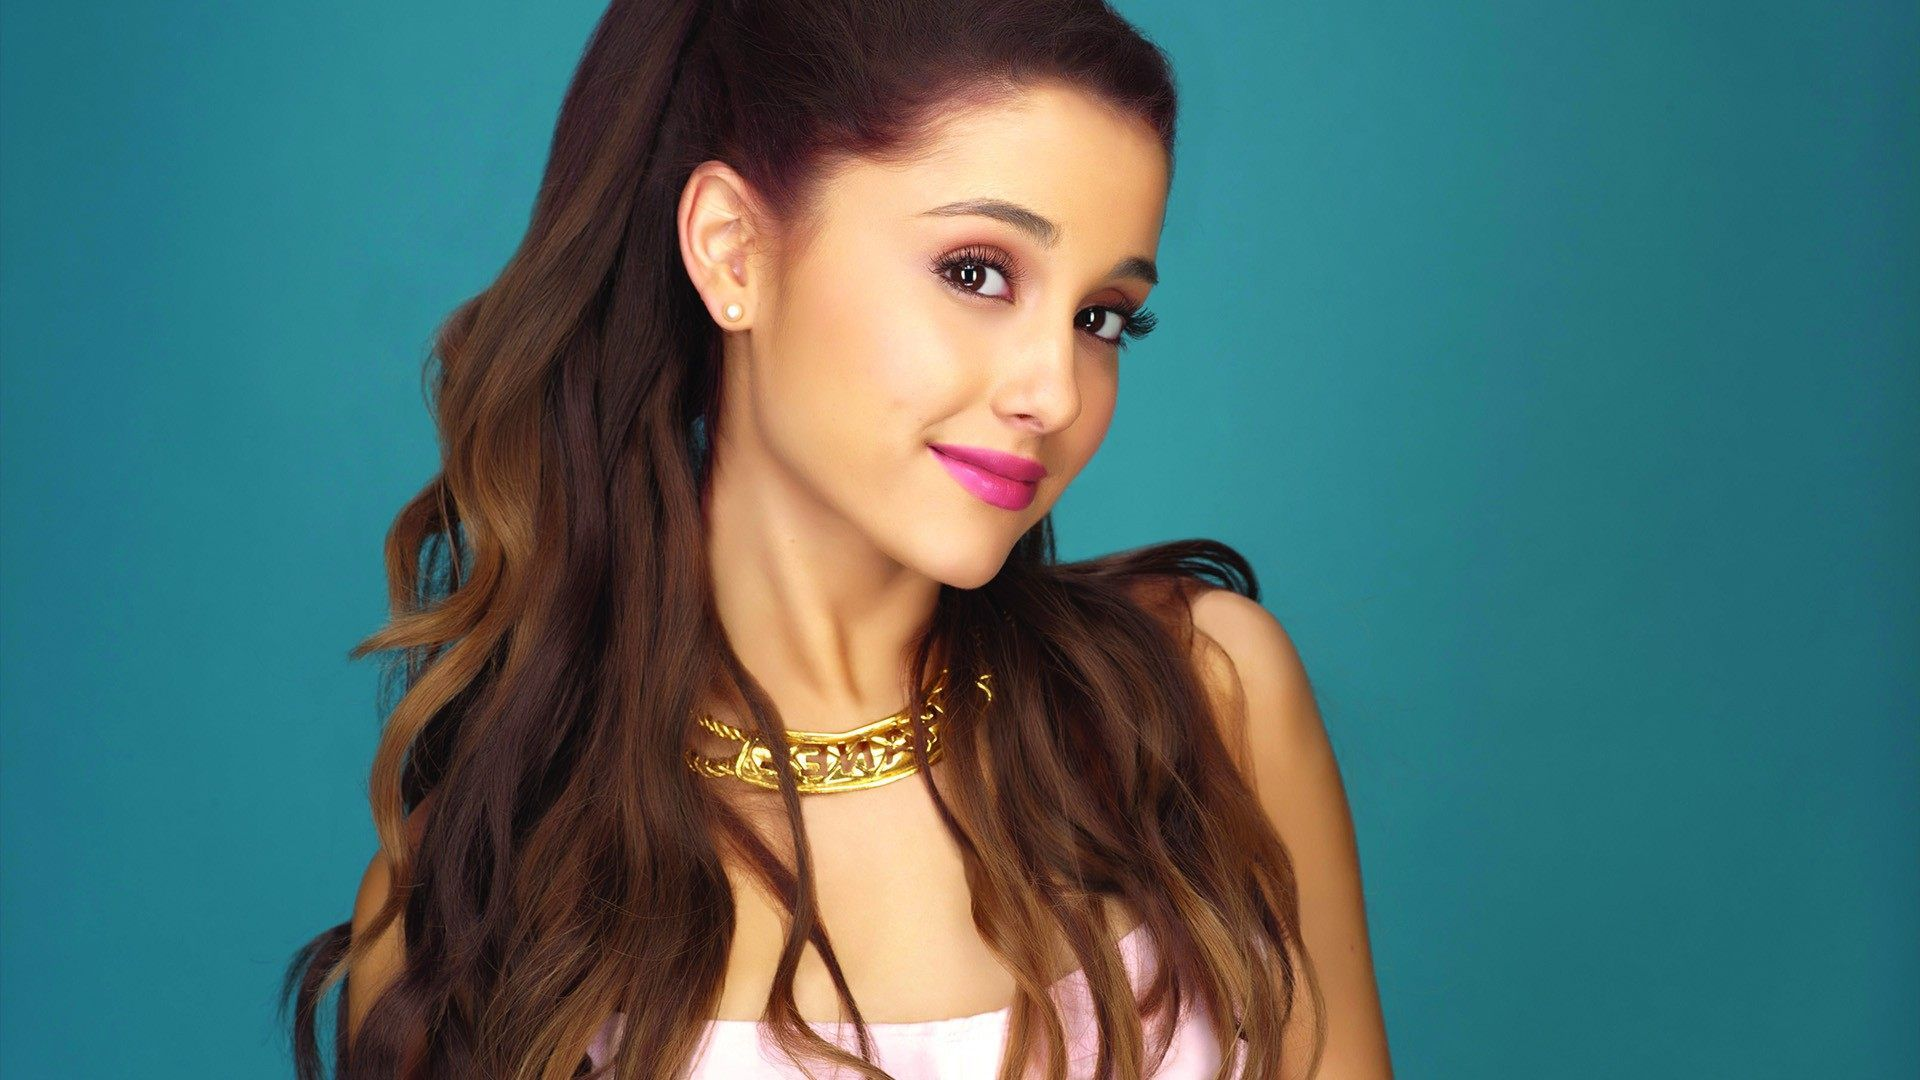 Makeup with mint green dress  ariana grande smile face wallpaper  x   kB by Bishop